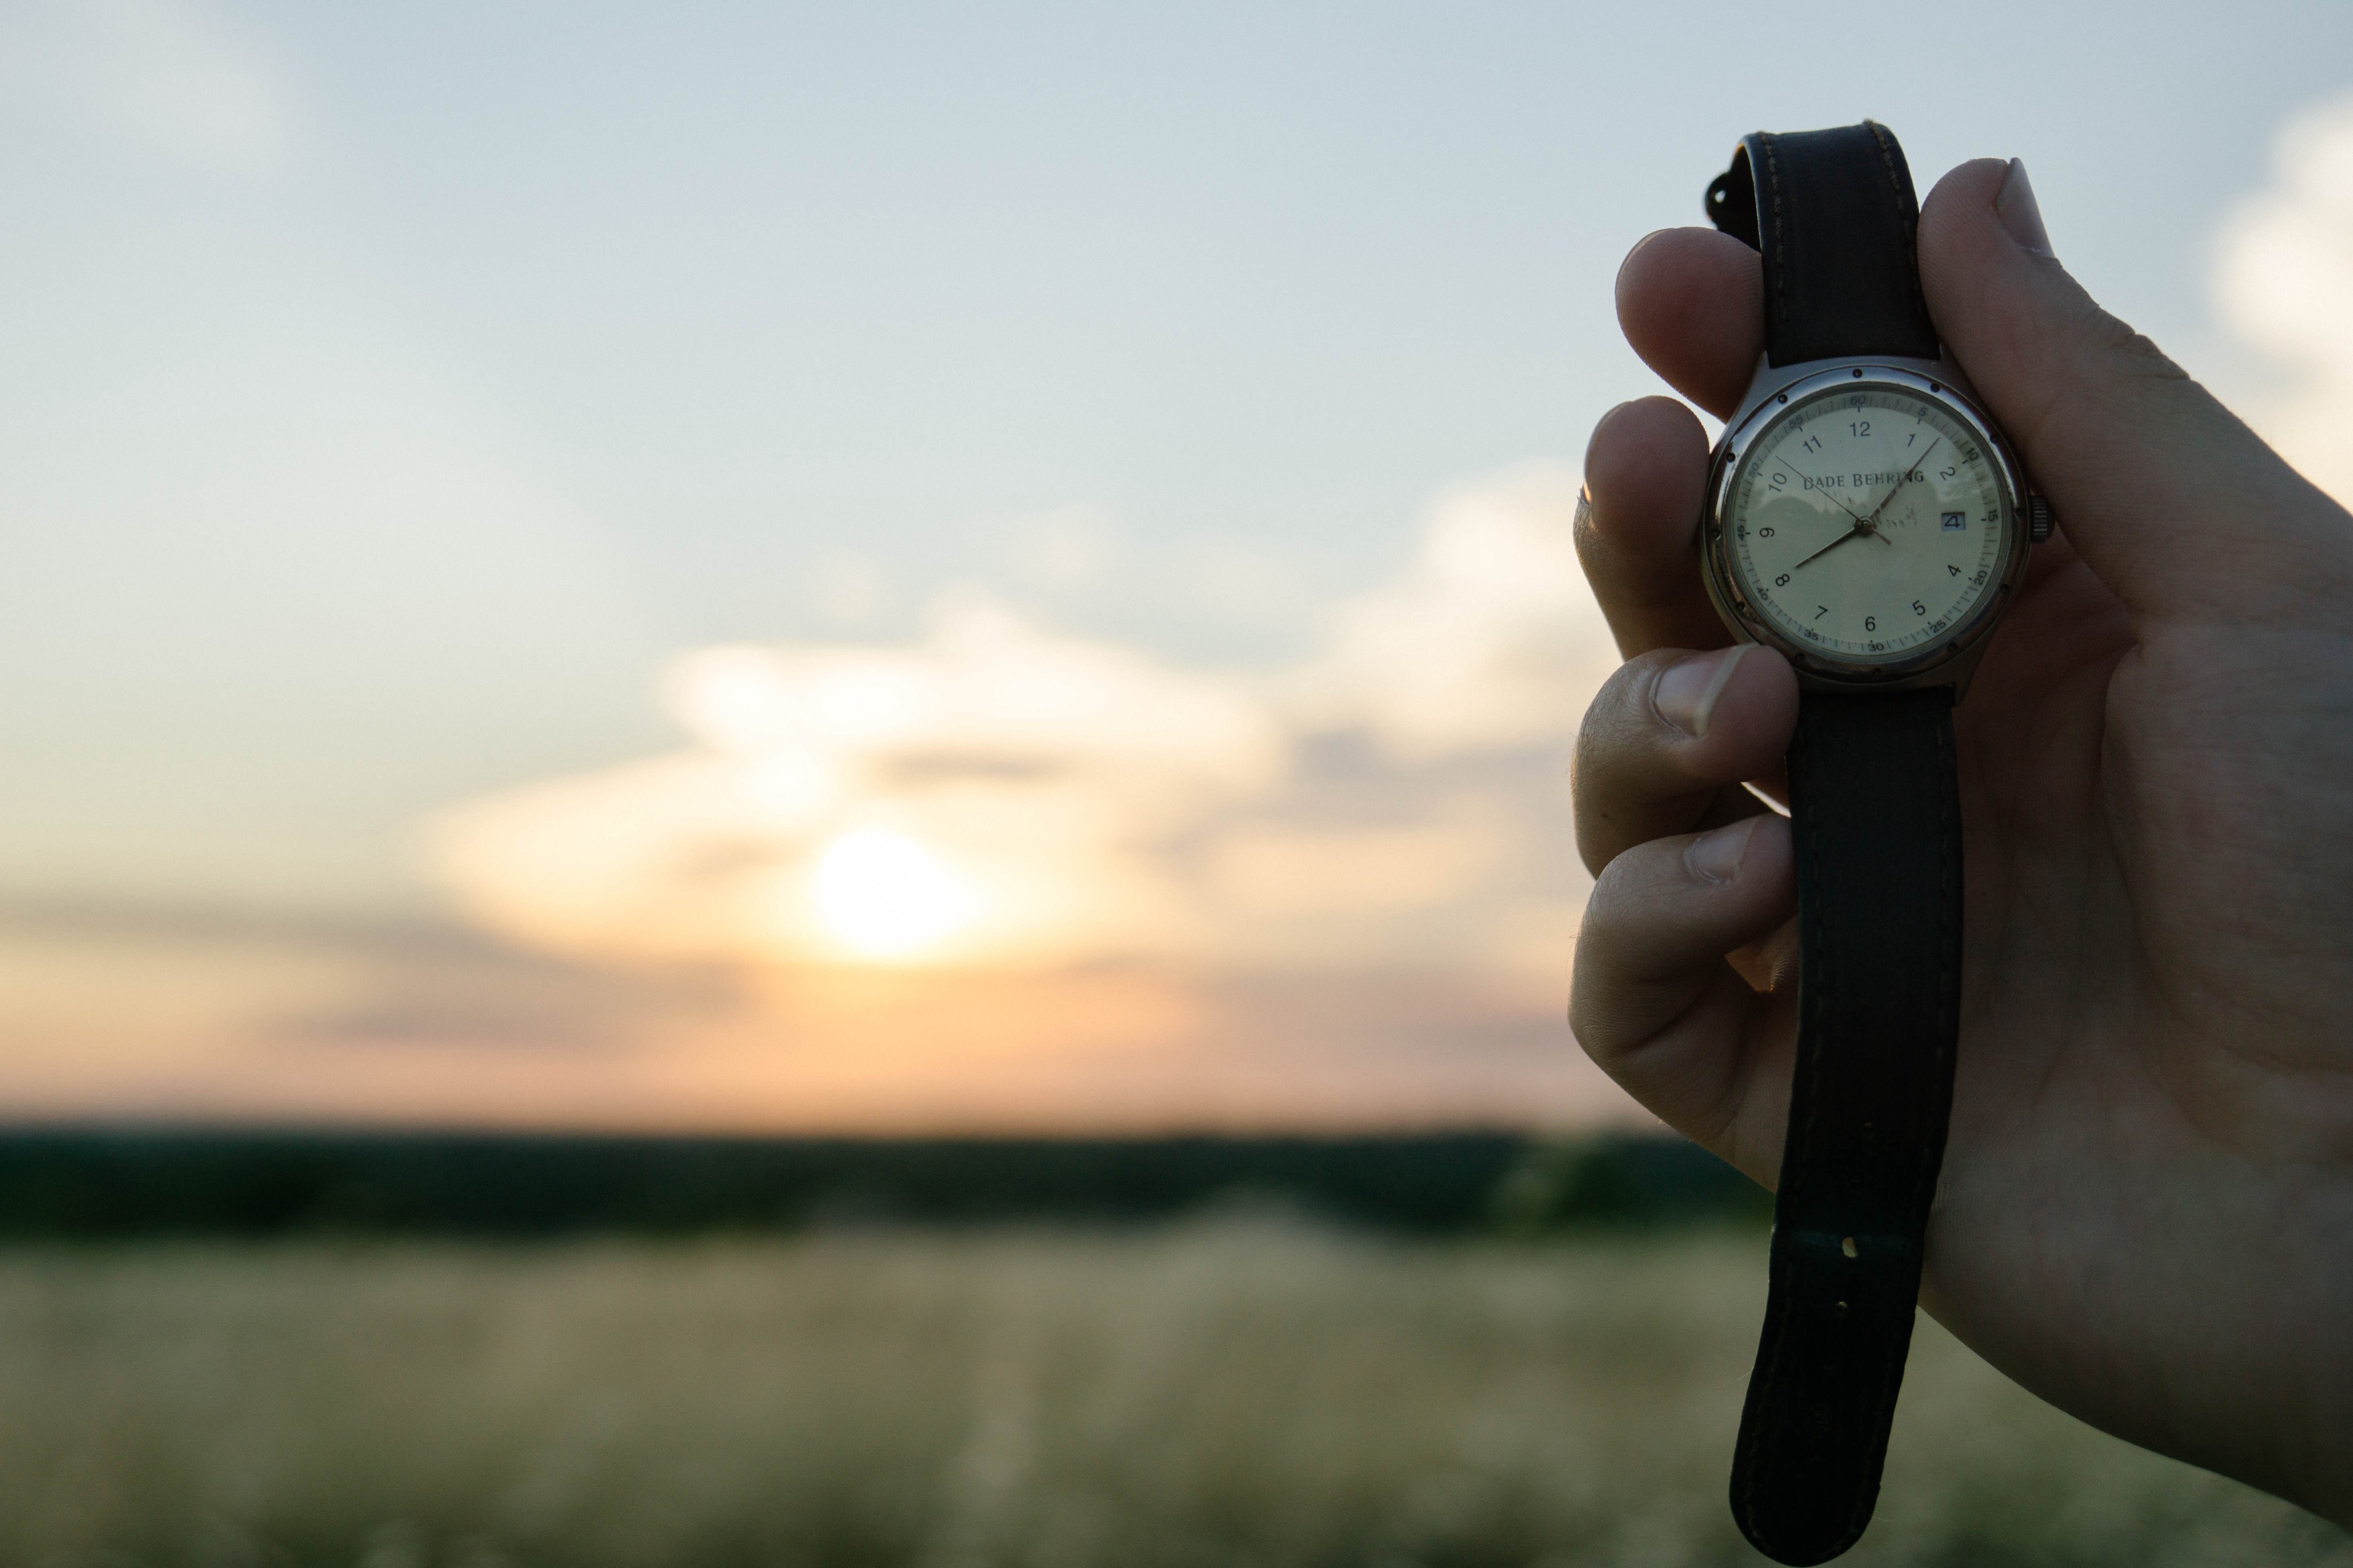 A hand holding a pocket watch, and the sun setting in the background.